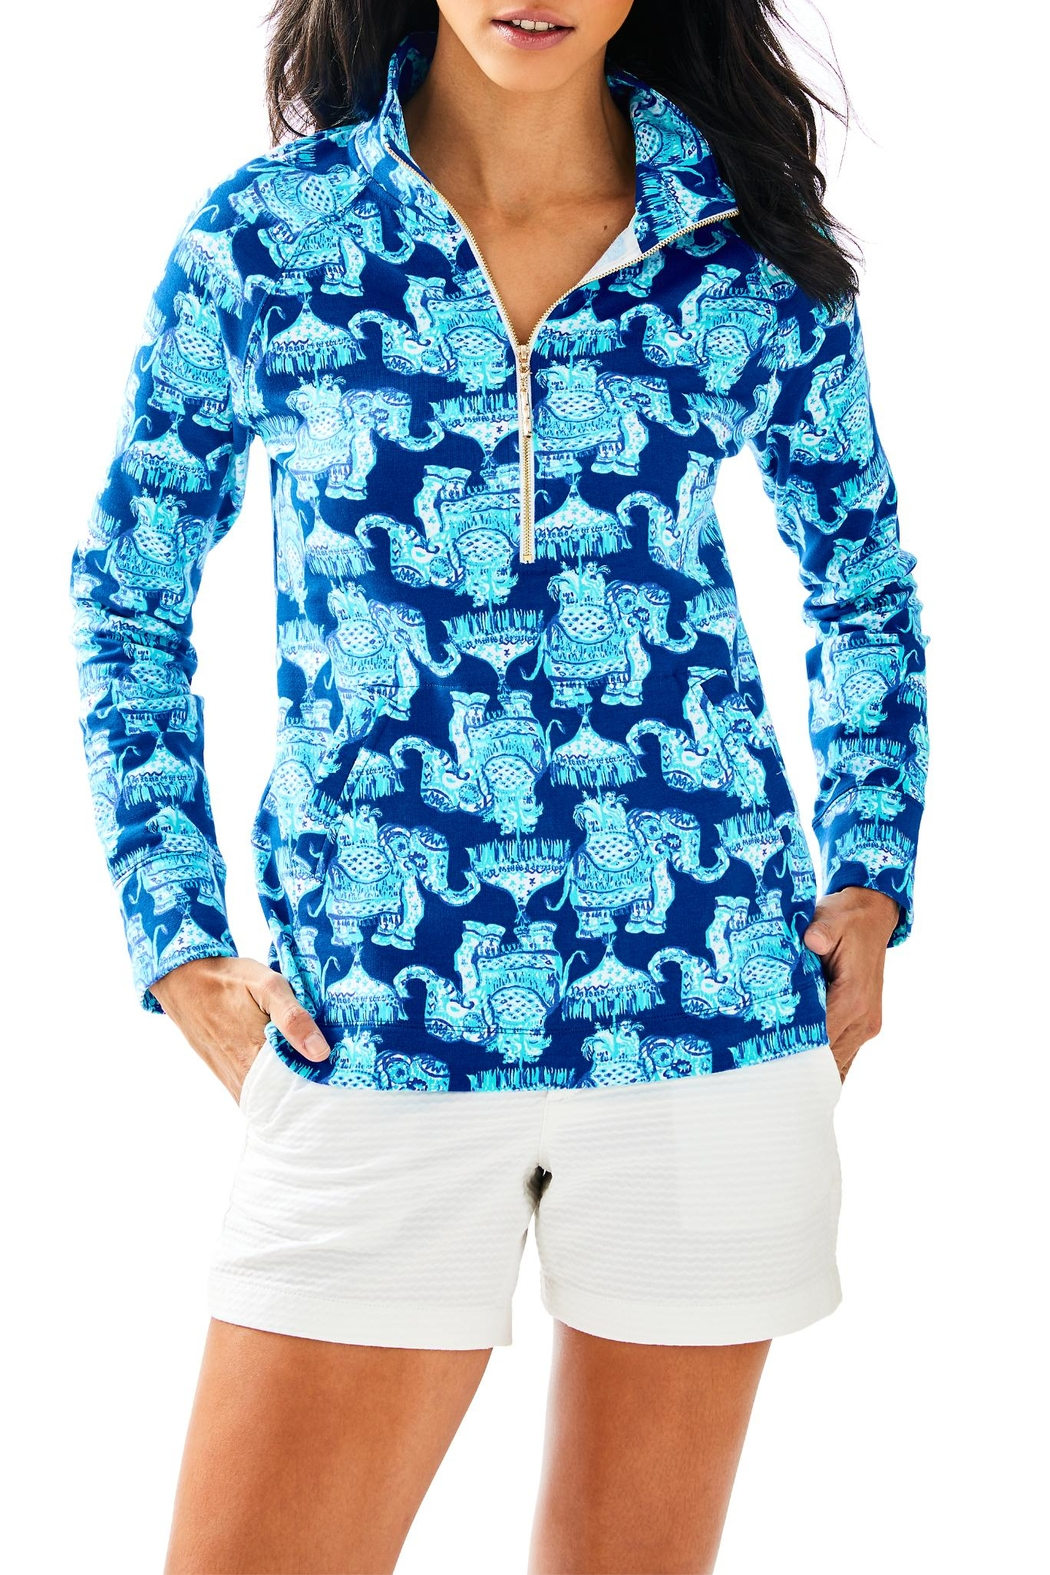 Lilly Pulitzer Skipper Printed Popover - Main Image